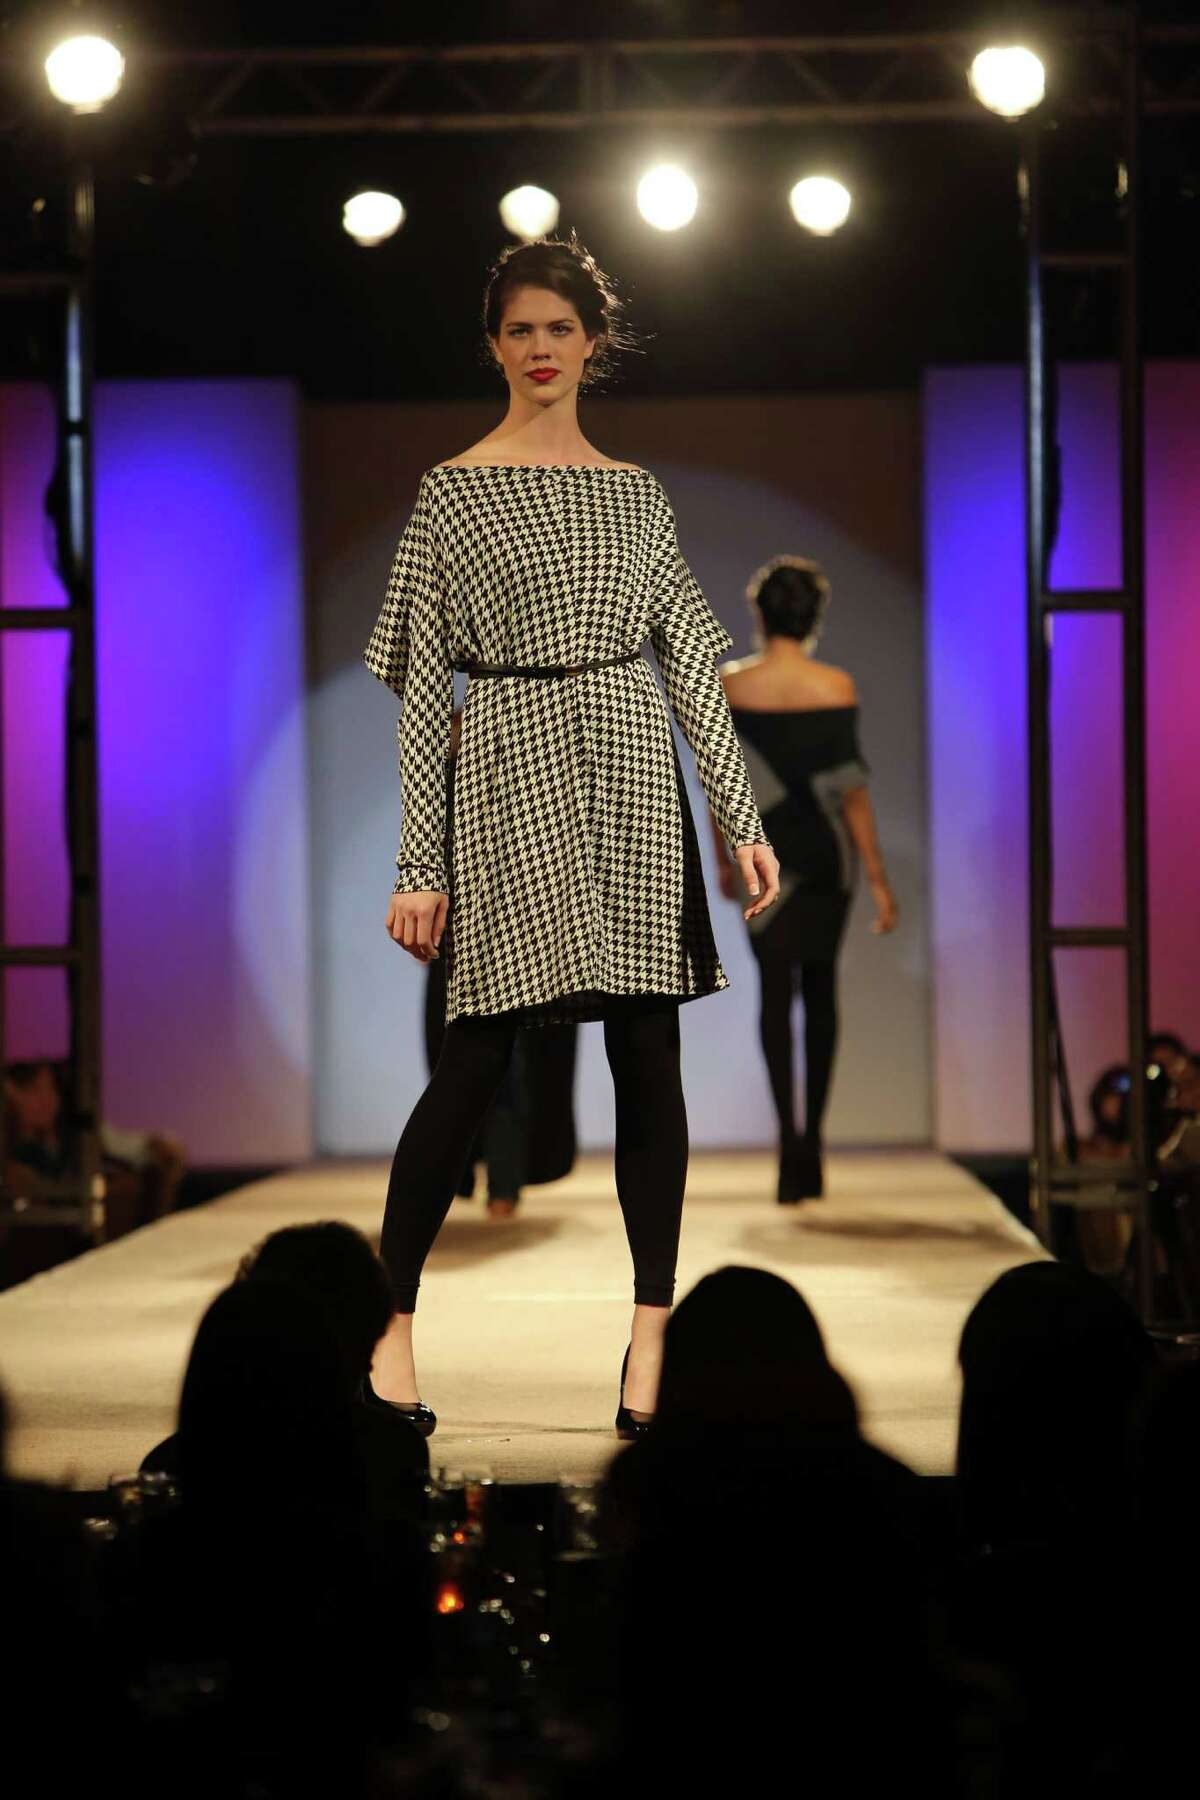 Nine students presented six different looks on Monday April 22, 2013 at the annual Cutting Edge Fiesta Fashion Show put on by the University of Incarnate Word's graduating design students.